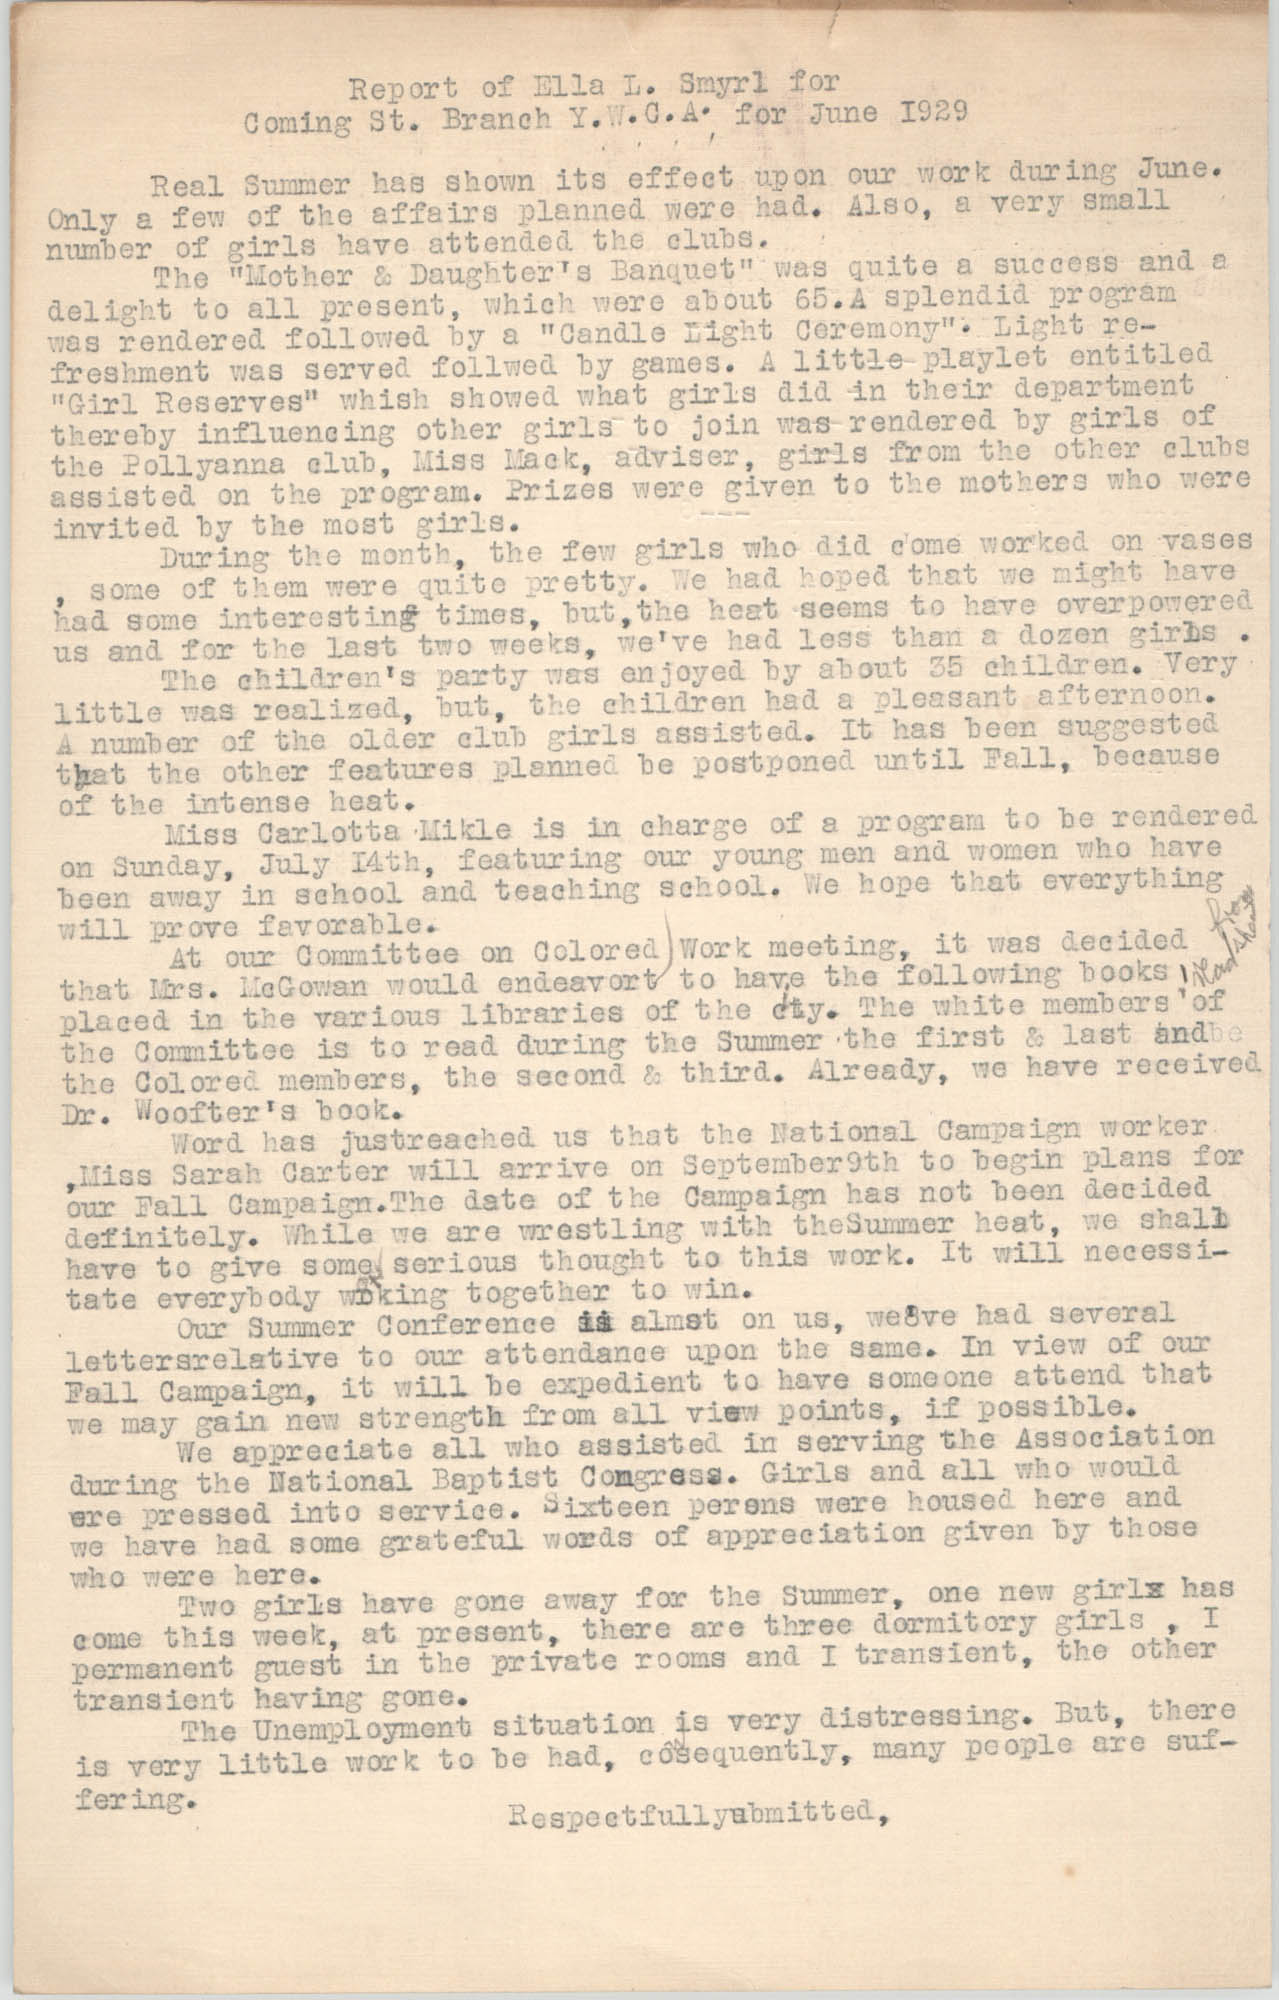 Monthly Report for the Coming Street Y.W.C.A., June 1929